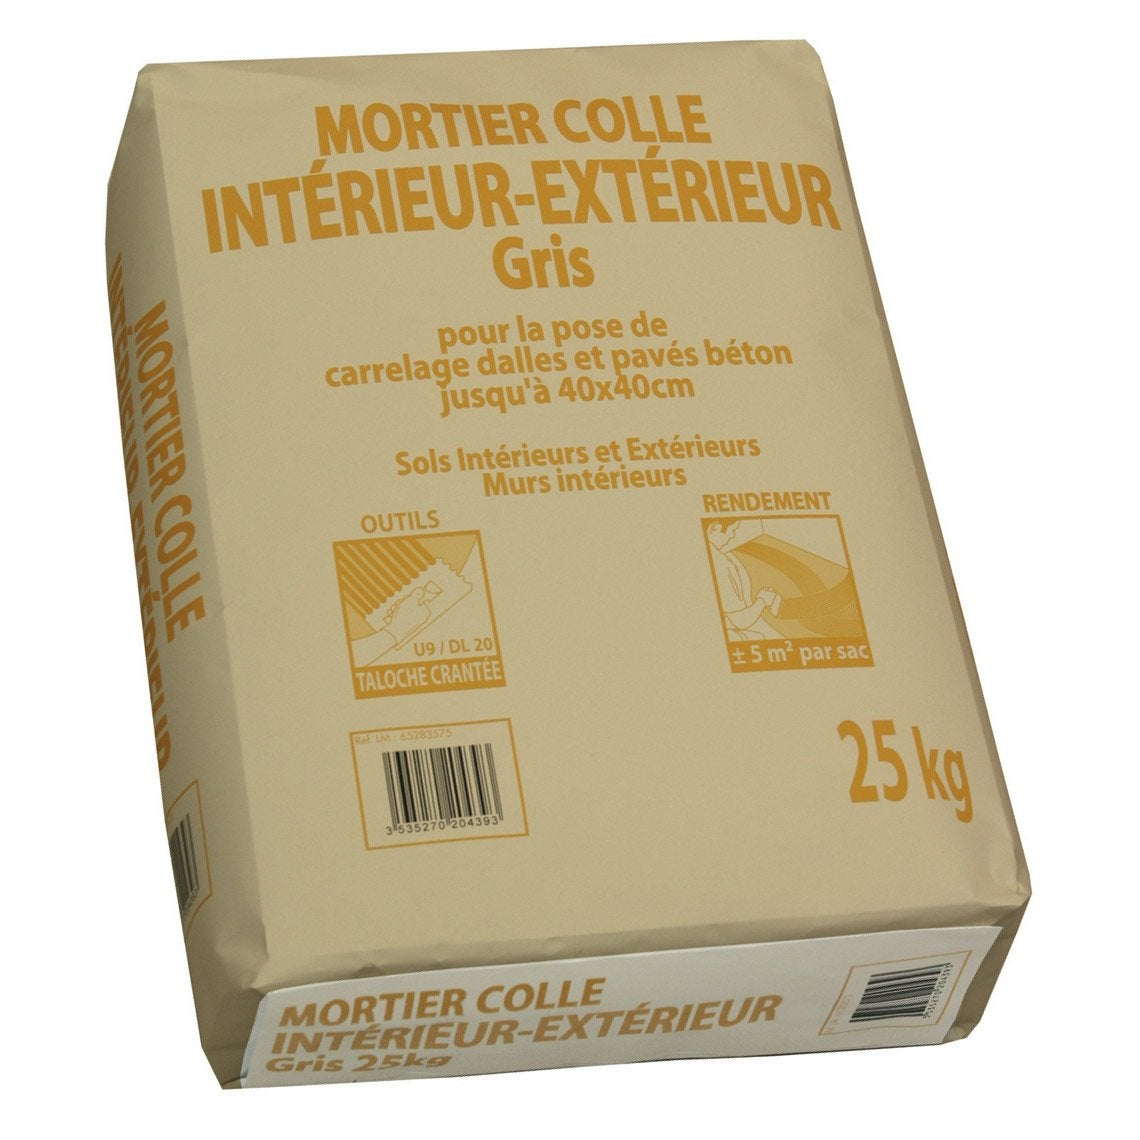 Colle pour carrelage int rieur ext rieur gris prb 25kg leroy merlin - Colle pour gazon synthetique leroy merlin ...